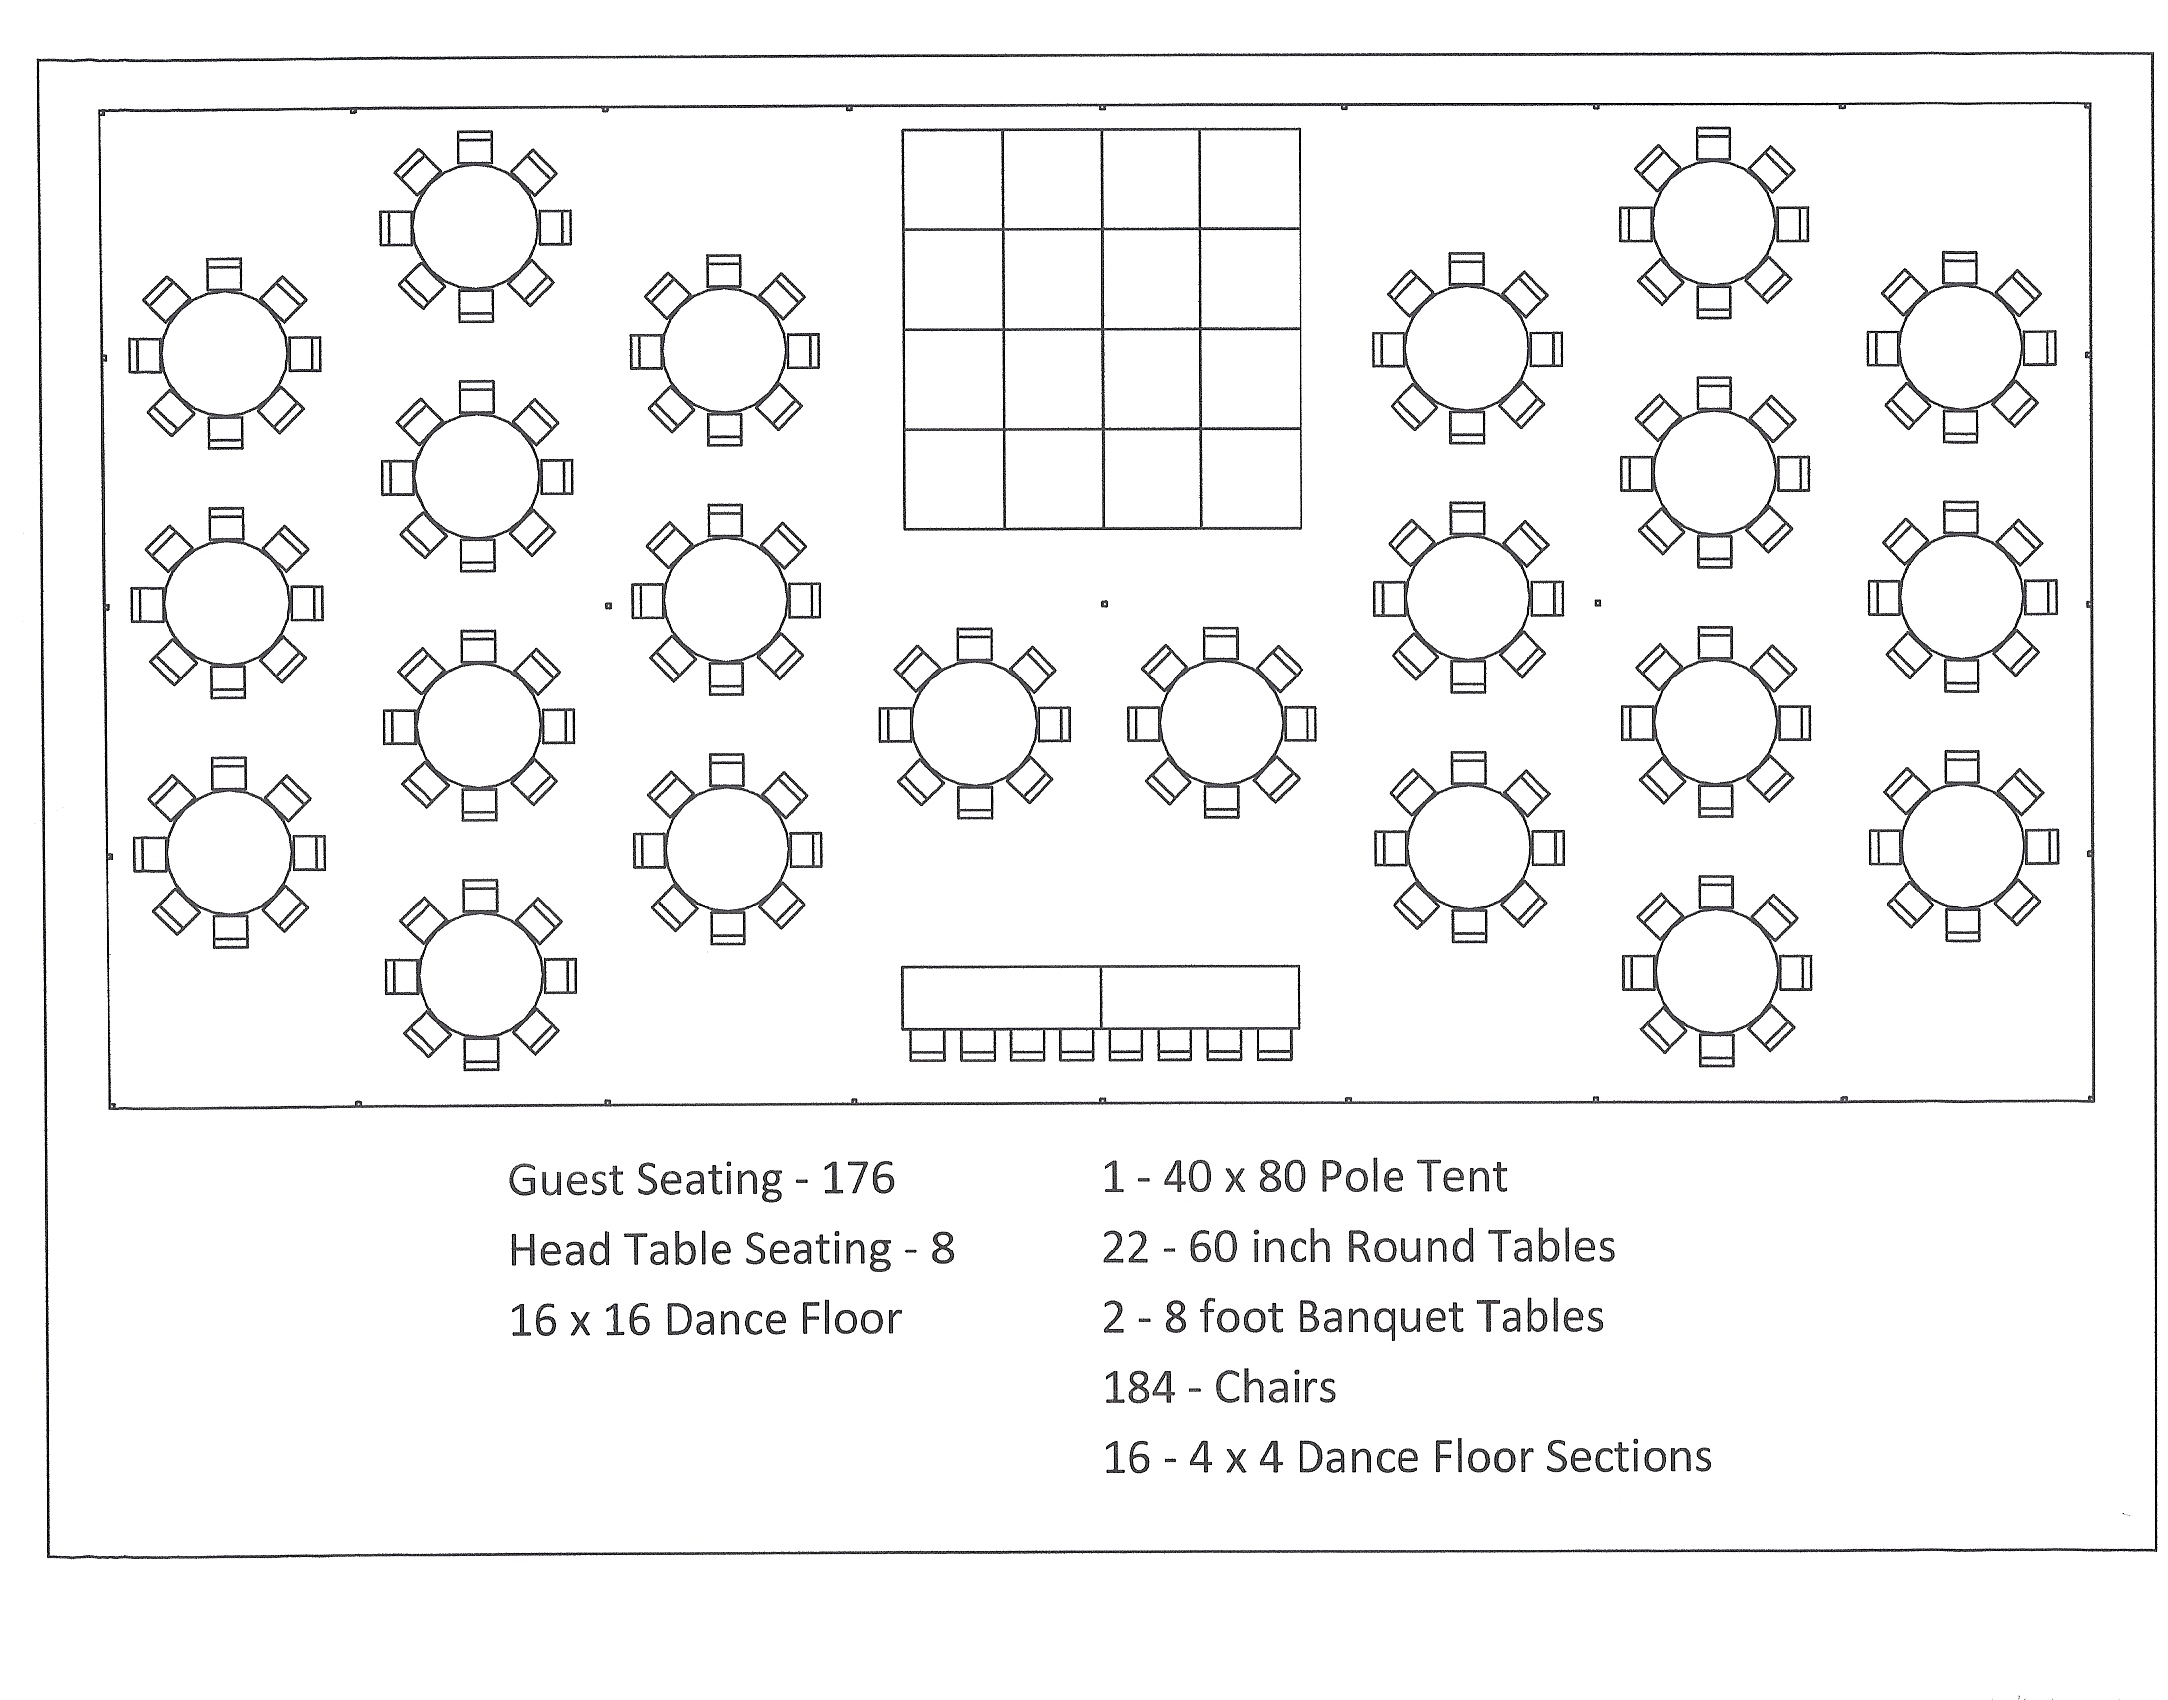 banquet table set up diagram central heating programmer wiring hall two ineedmorespace co 40 x 80 pole tent seating arrangements canton canopy food diagrams template